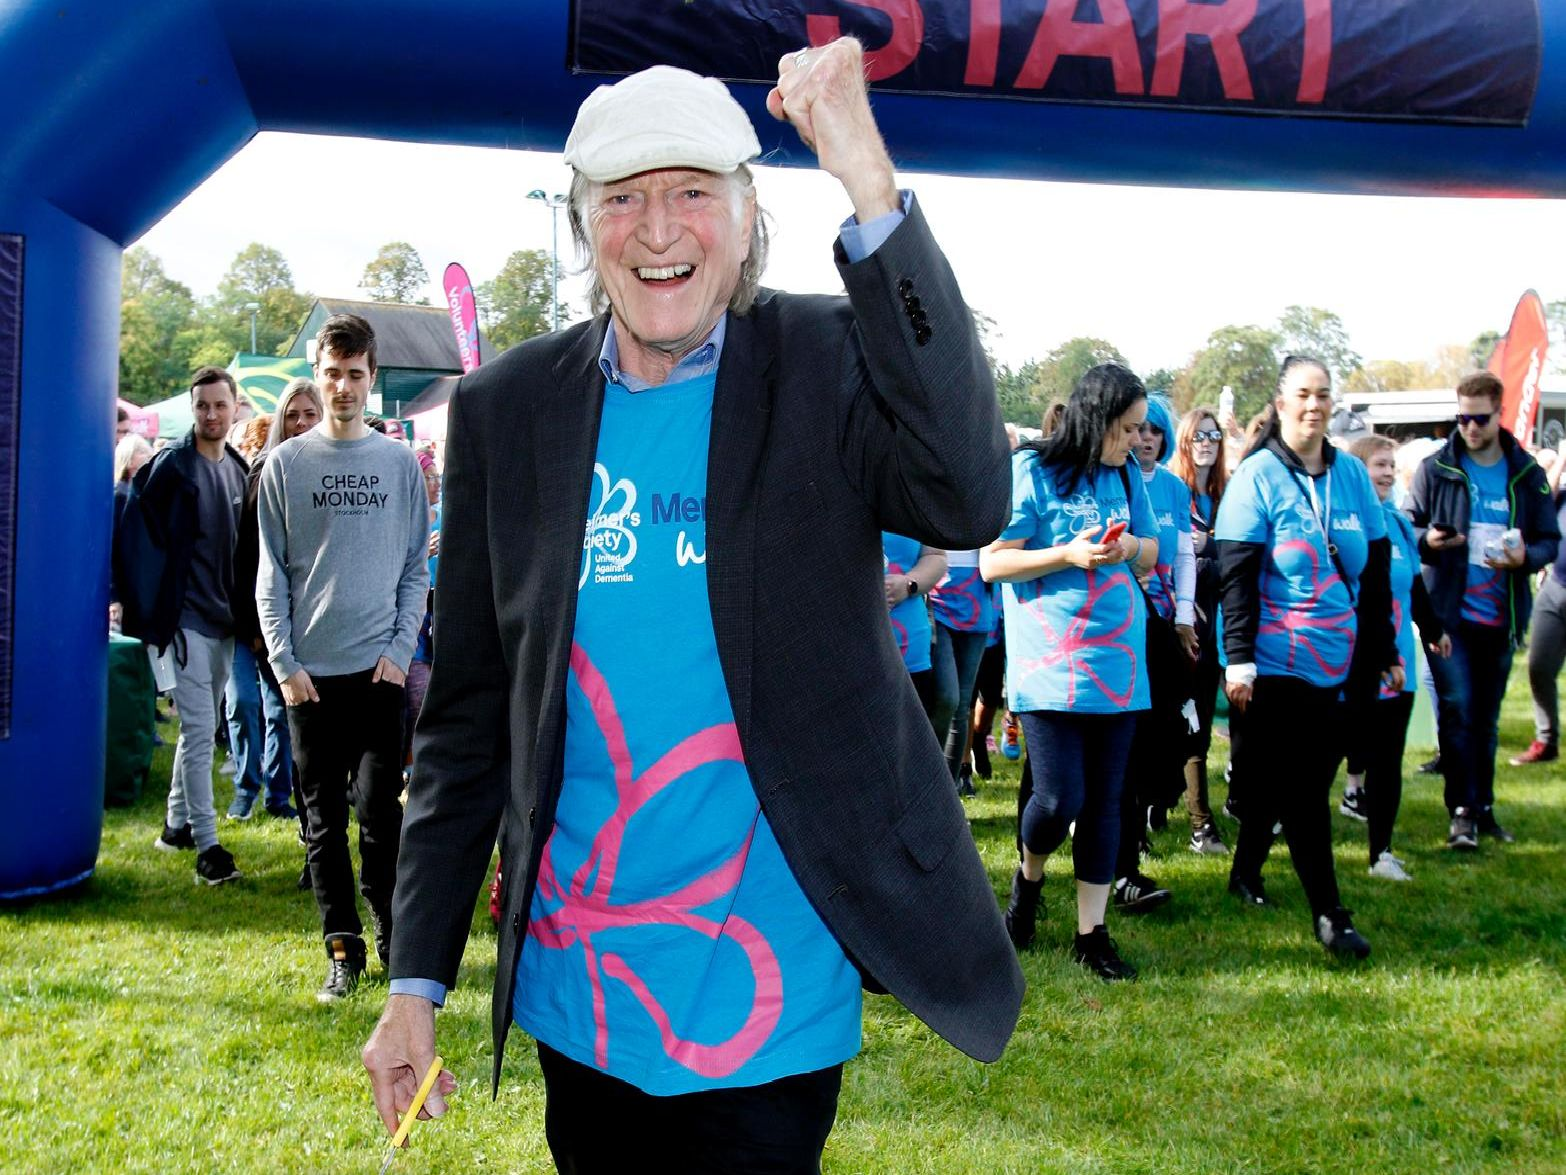 Actor David Bradley set off the memory walk in Leamington.'Picture by Andrew Higgins/Thousand Word Media